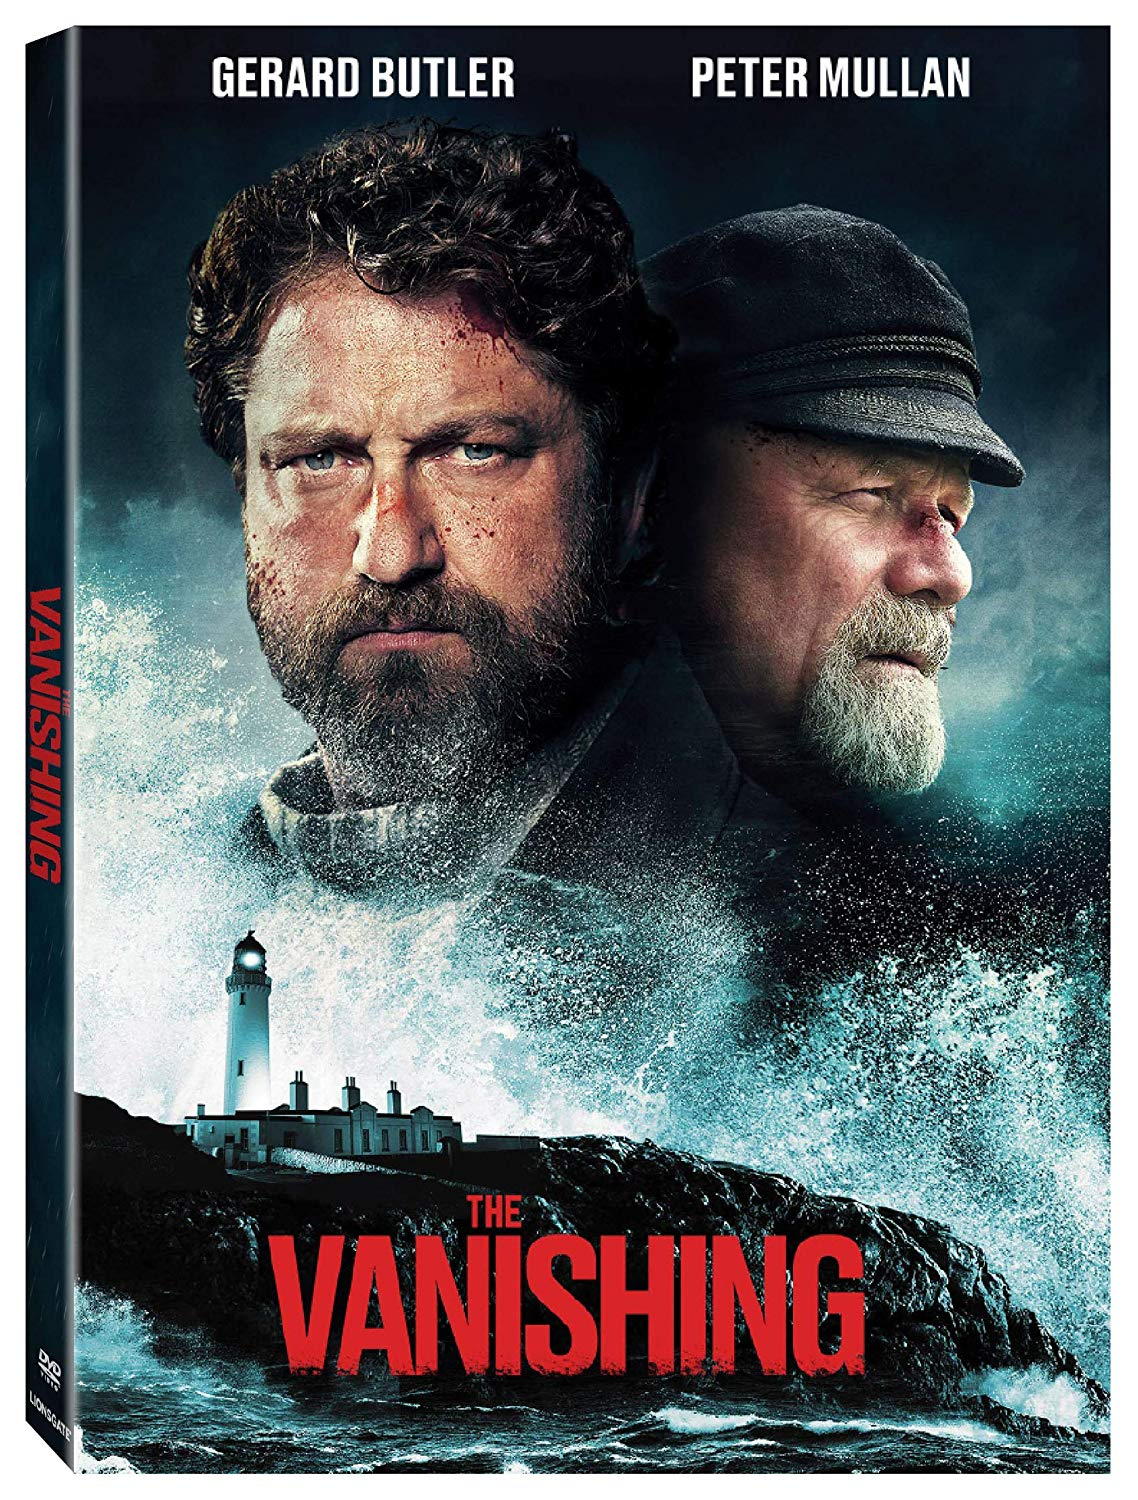 Cumberland County Public Library - The Vanishing